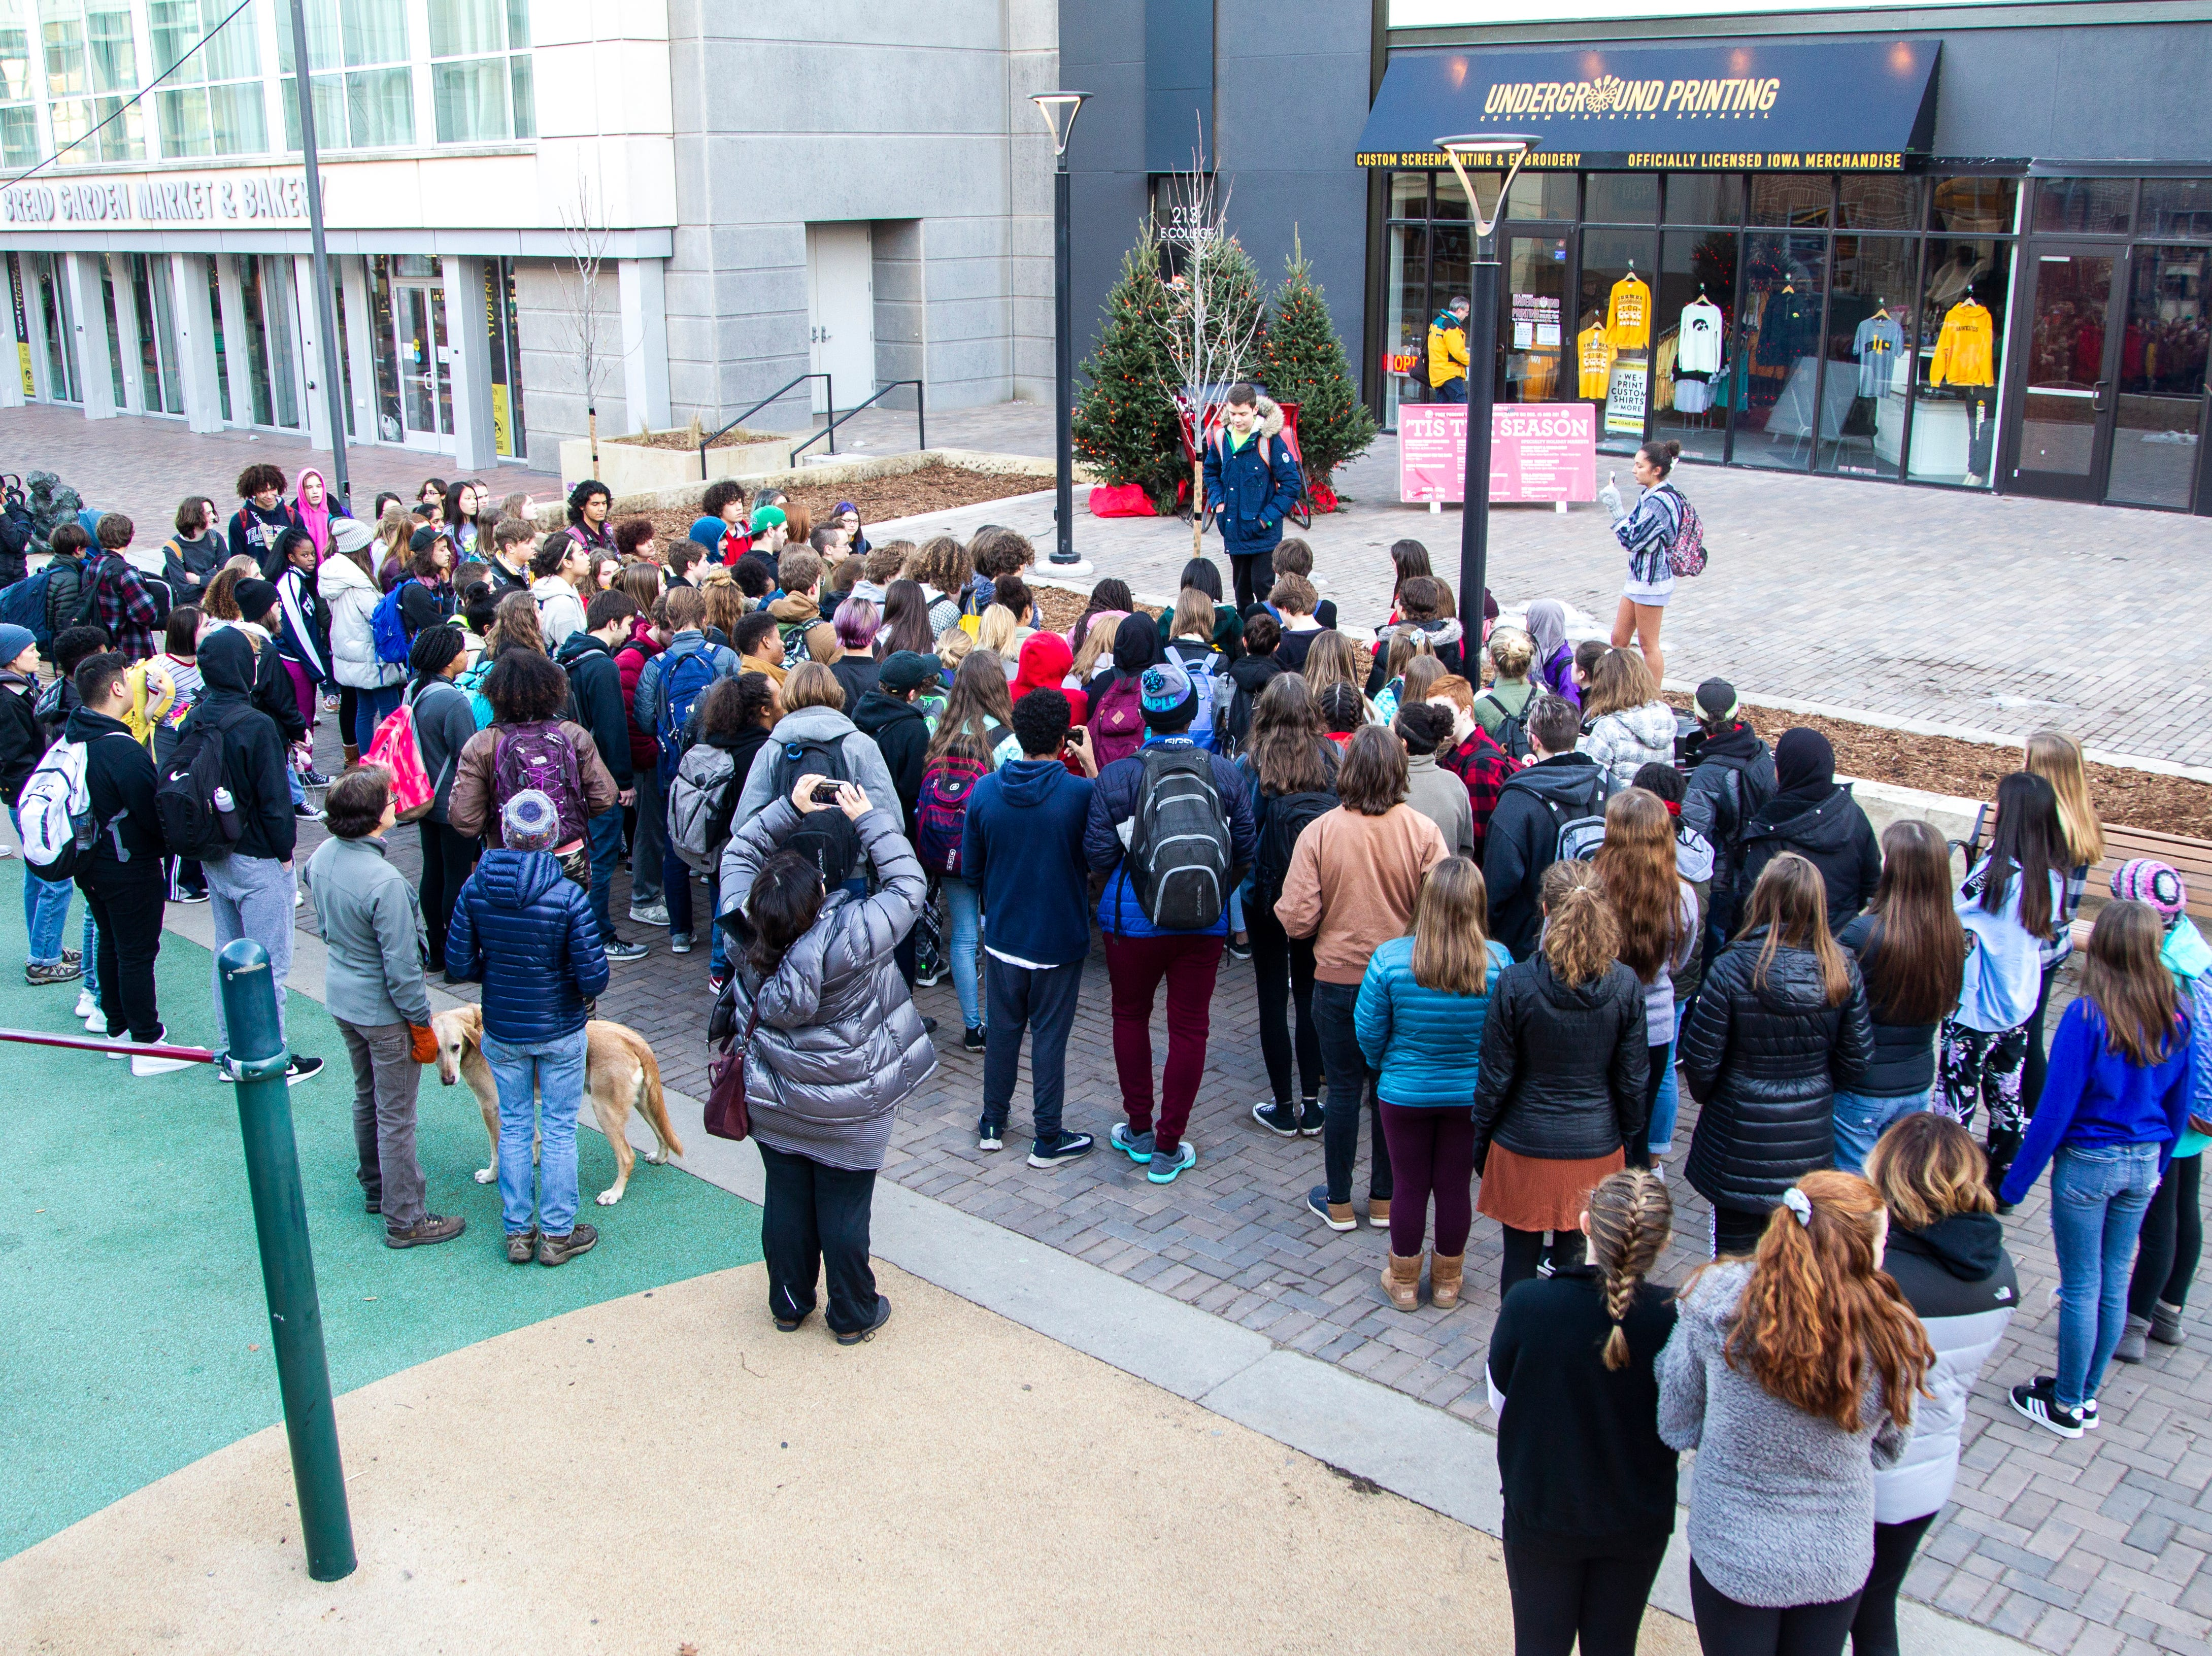 City High students gather downtown during a walkout on Friday, Dec. 14, 2018, in Iowa City. The Students Against School Shootings group organized the walkout to land on the 6th anniversary of the Sandy Hook school shooting.